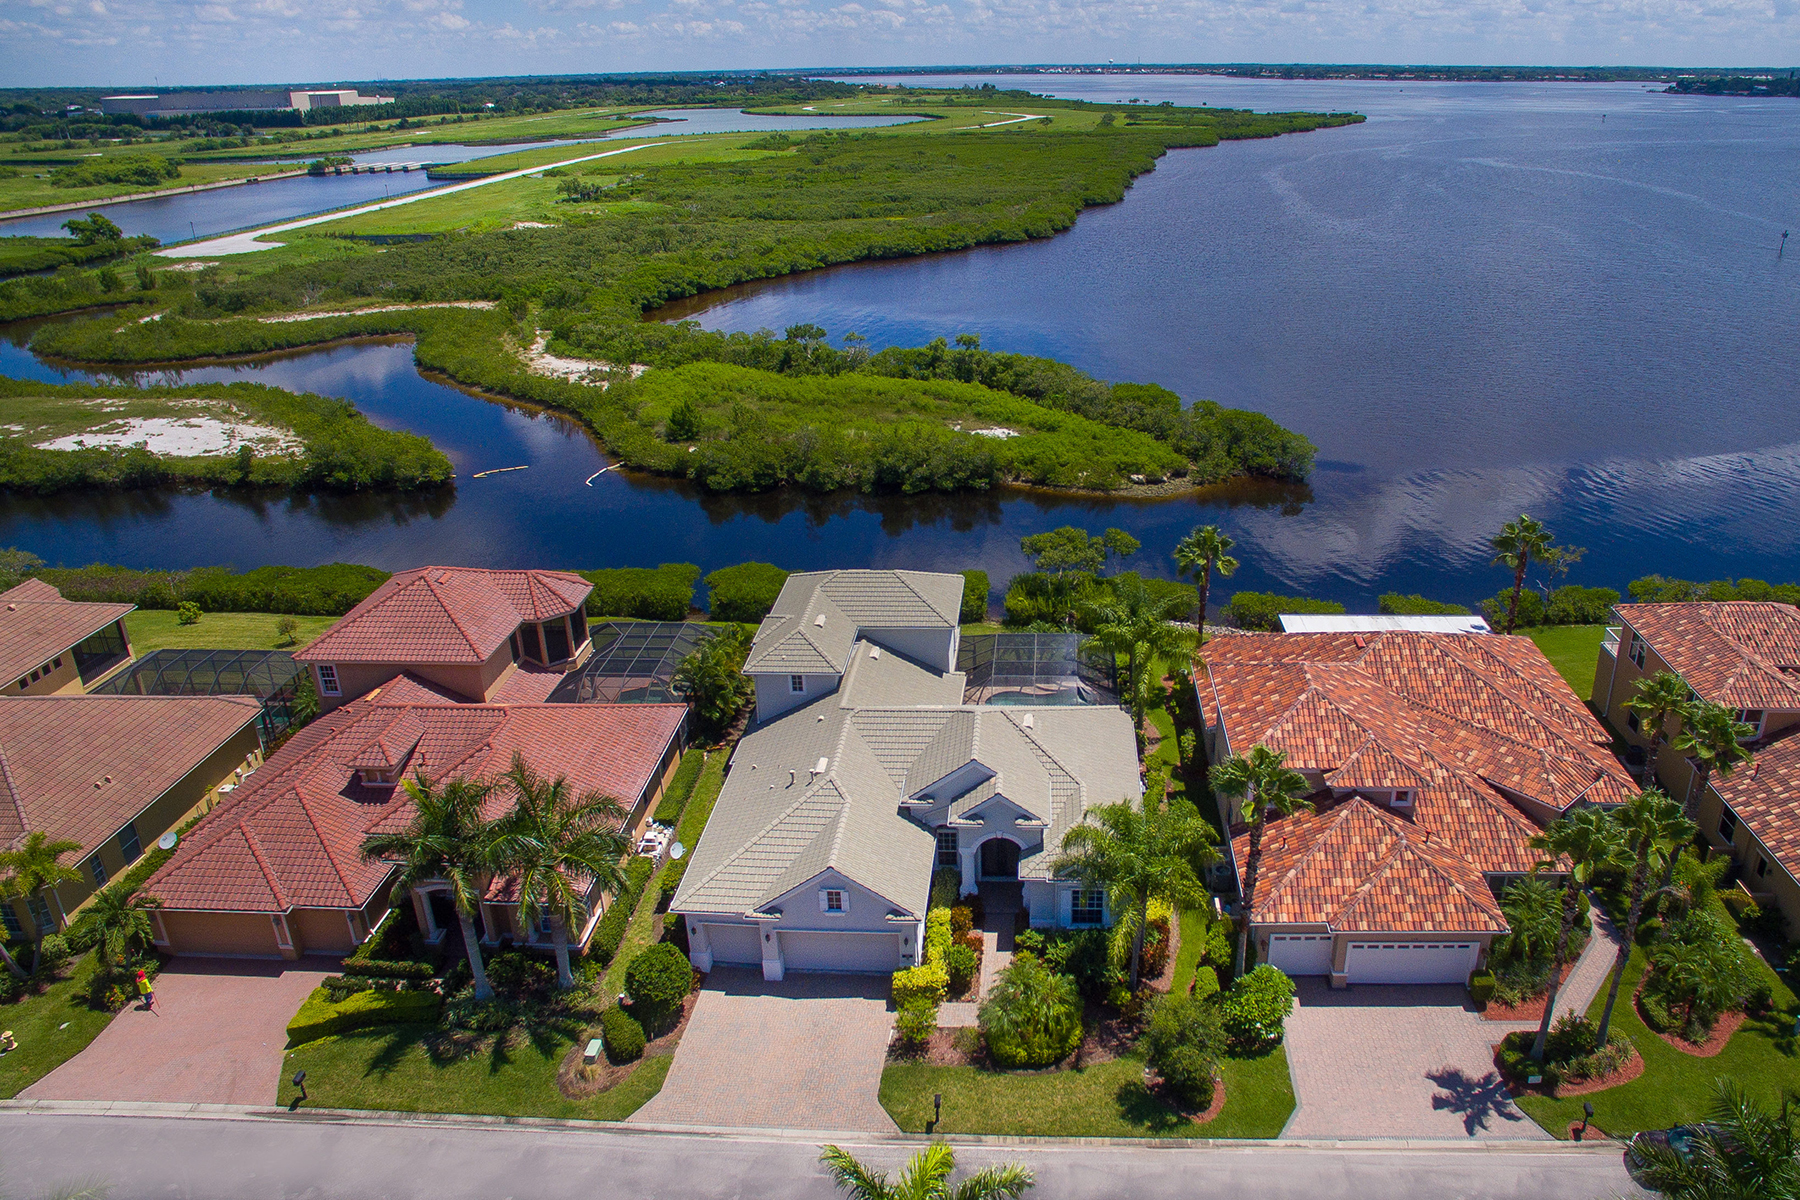 Single Family Home for Sale at PENINSULA AT RIVIERA DUNES 118 12th Ave E, Palmetto, Florida 34221 United States